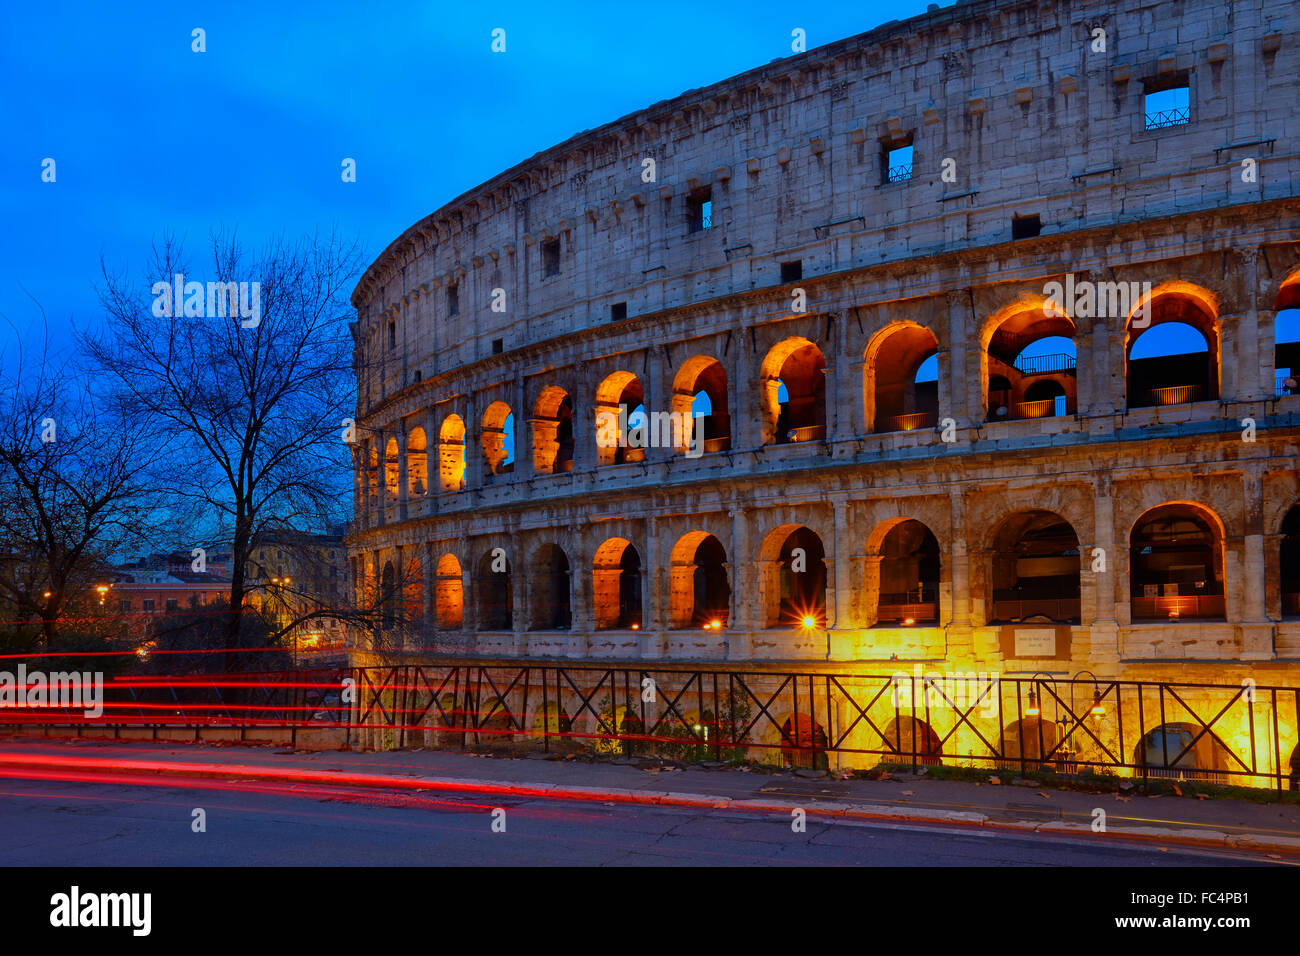 Night view of the Colisseum of Rome - Stock Image